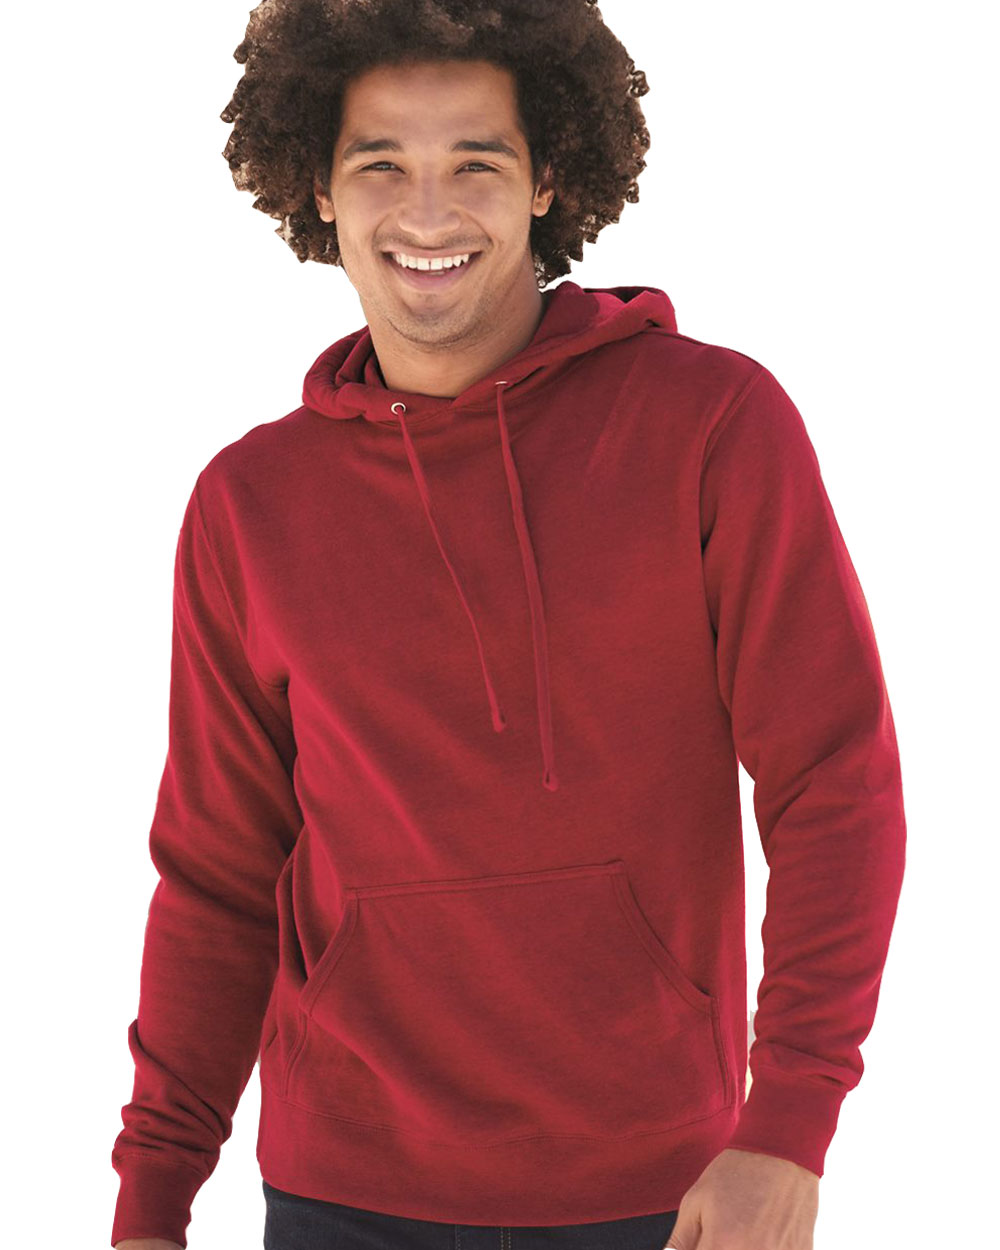 Itc afx4000 red heather